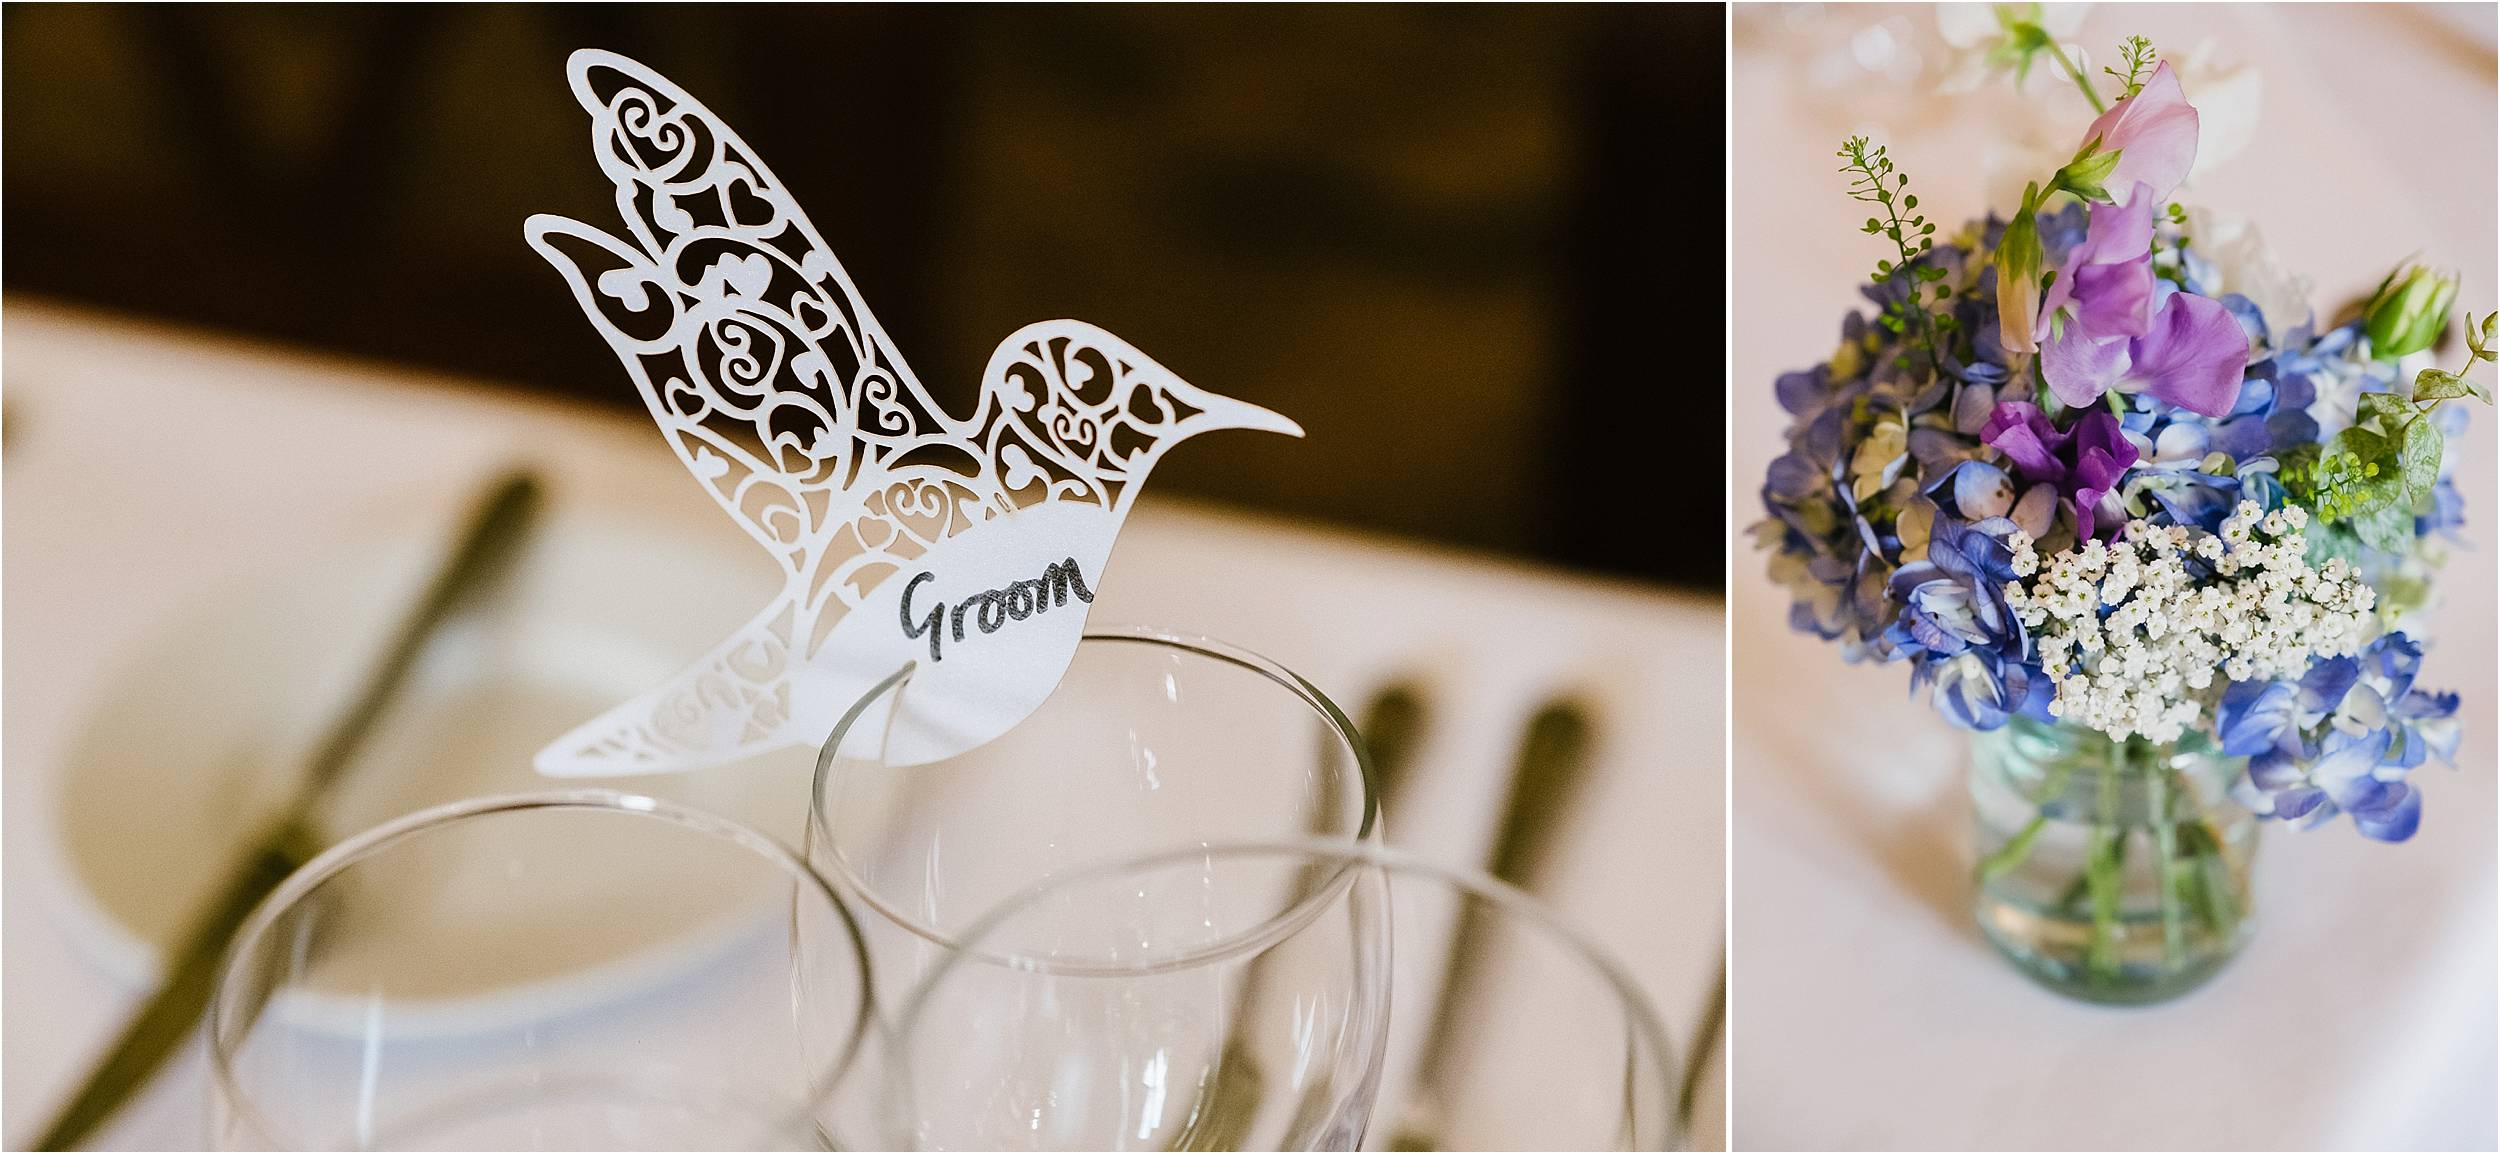 Caswell House Oxfordshire Wedding Photographer_0211.jpg